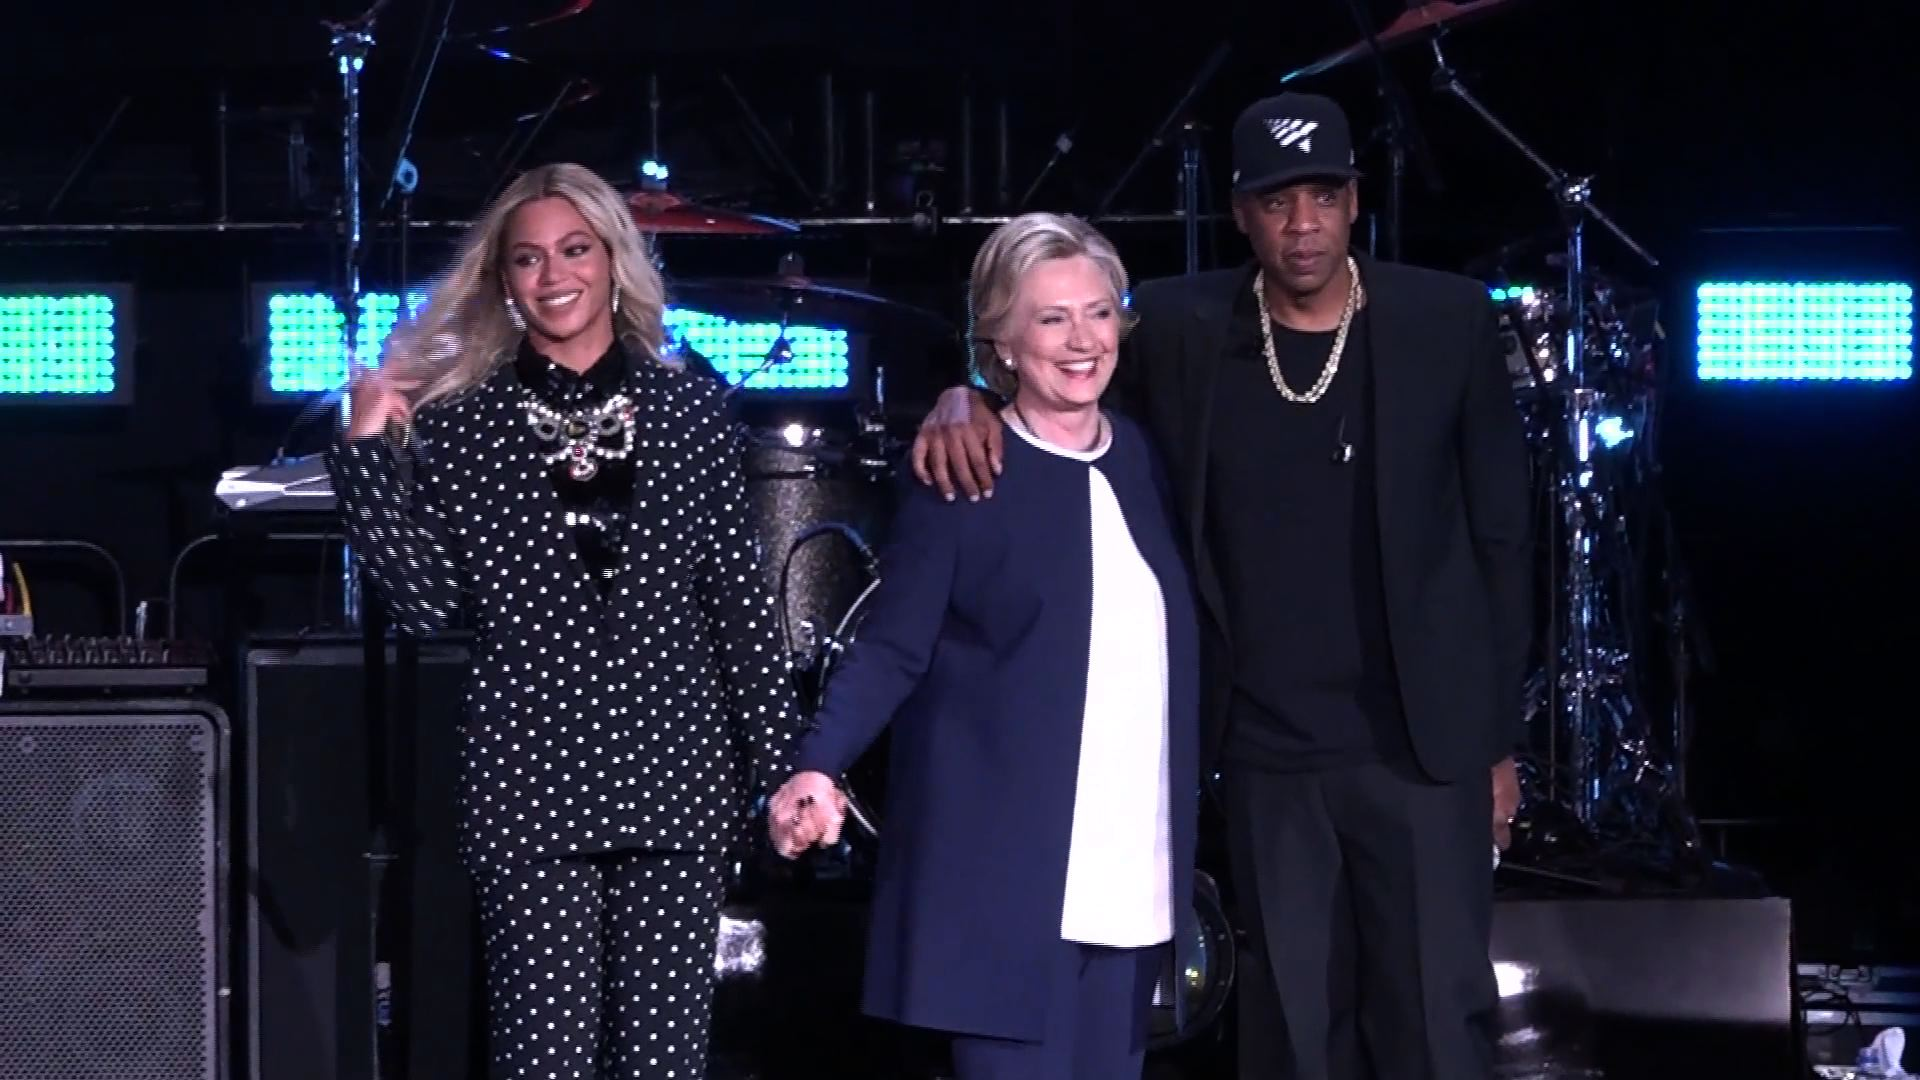 Clinton gets megastar Jay-Z and Beyoncé endorsement